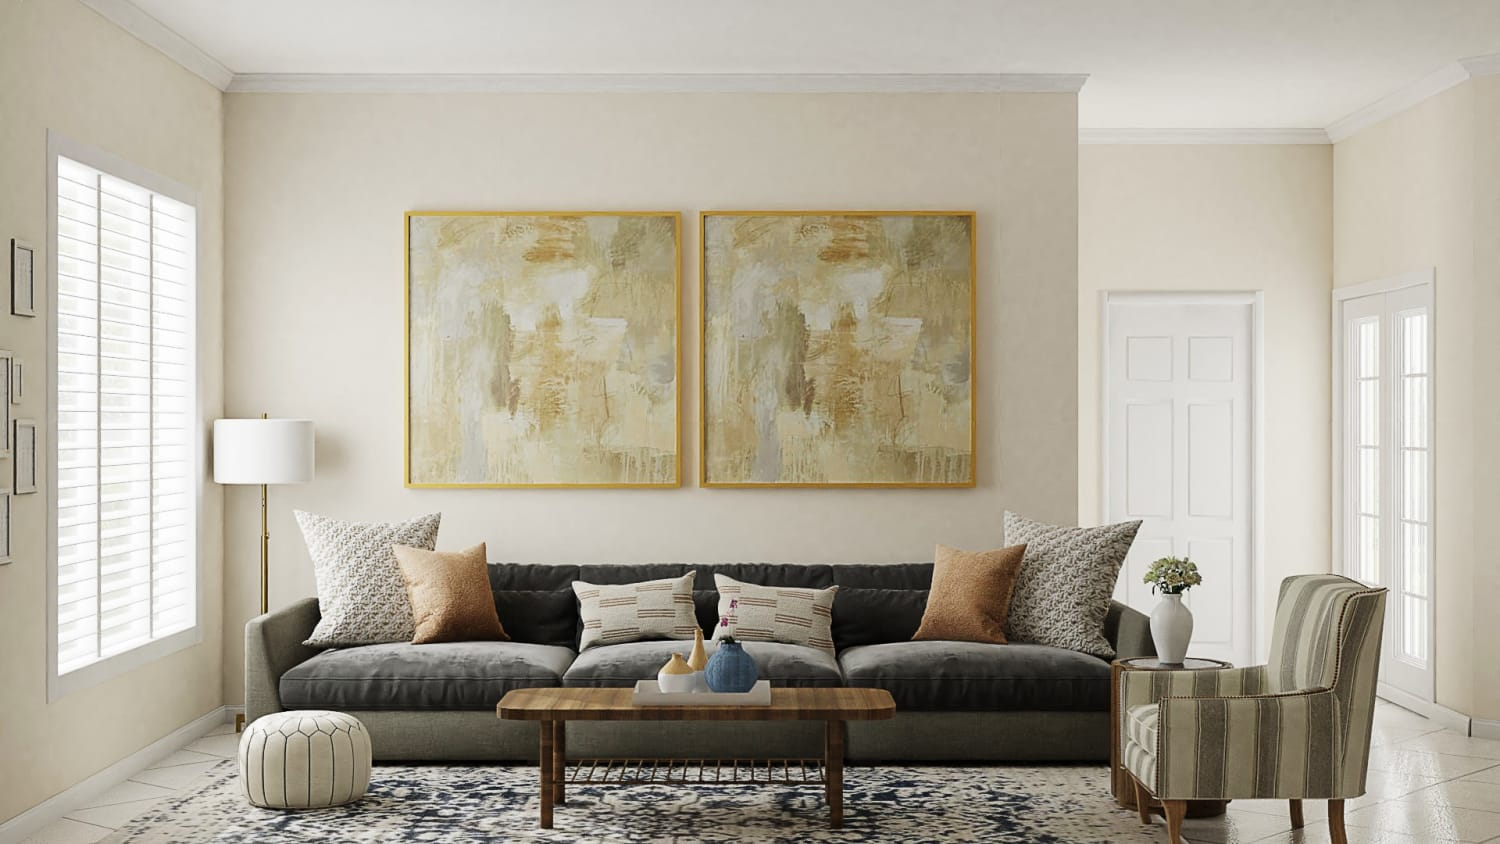 Modern Traditional Living Room with Statement Art  Design By Spacejoy